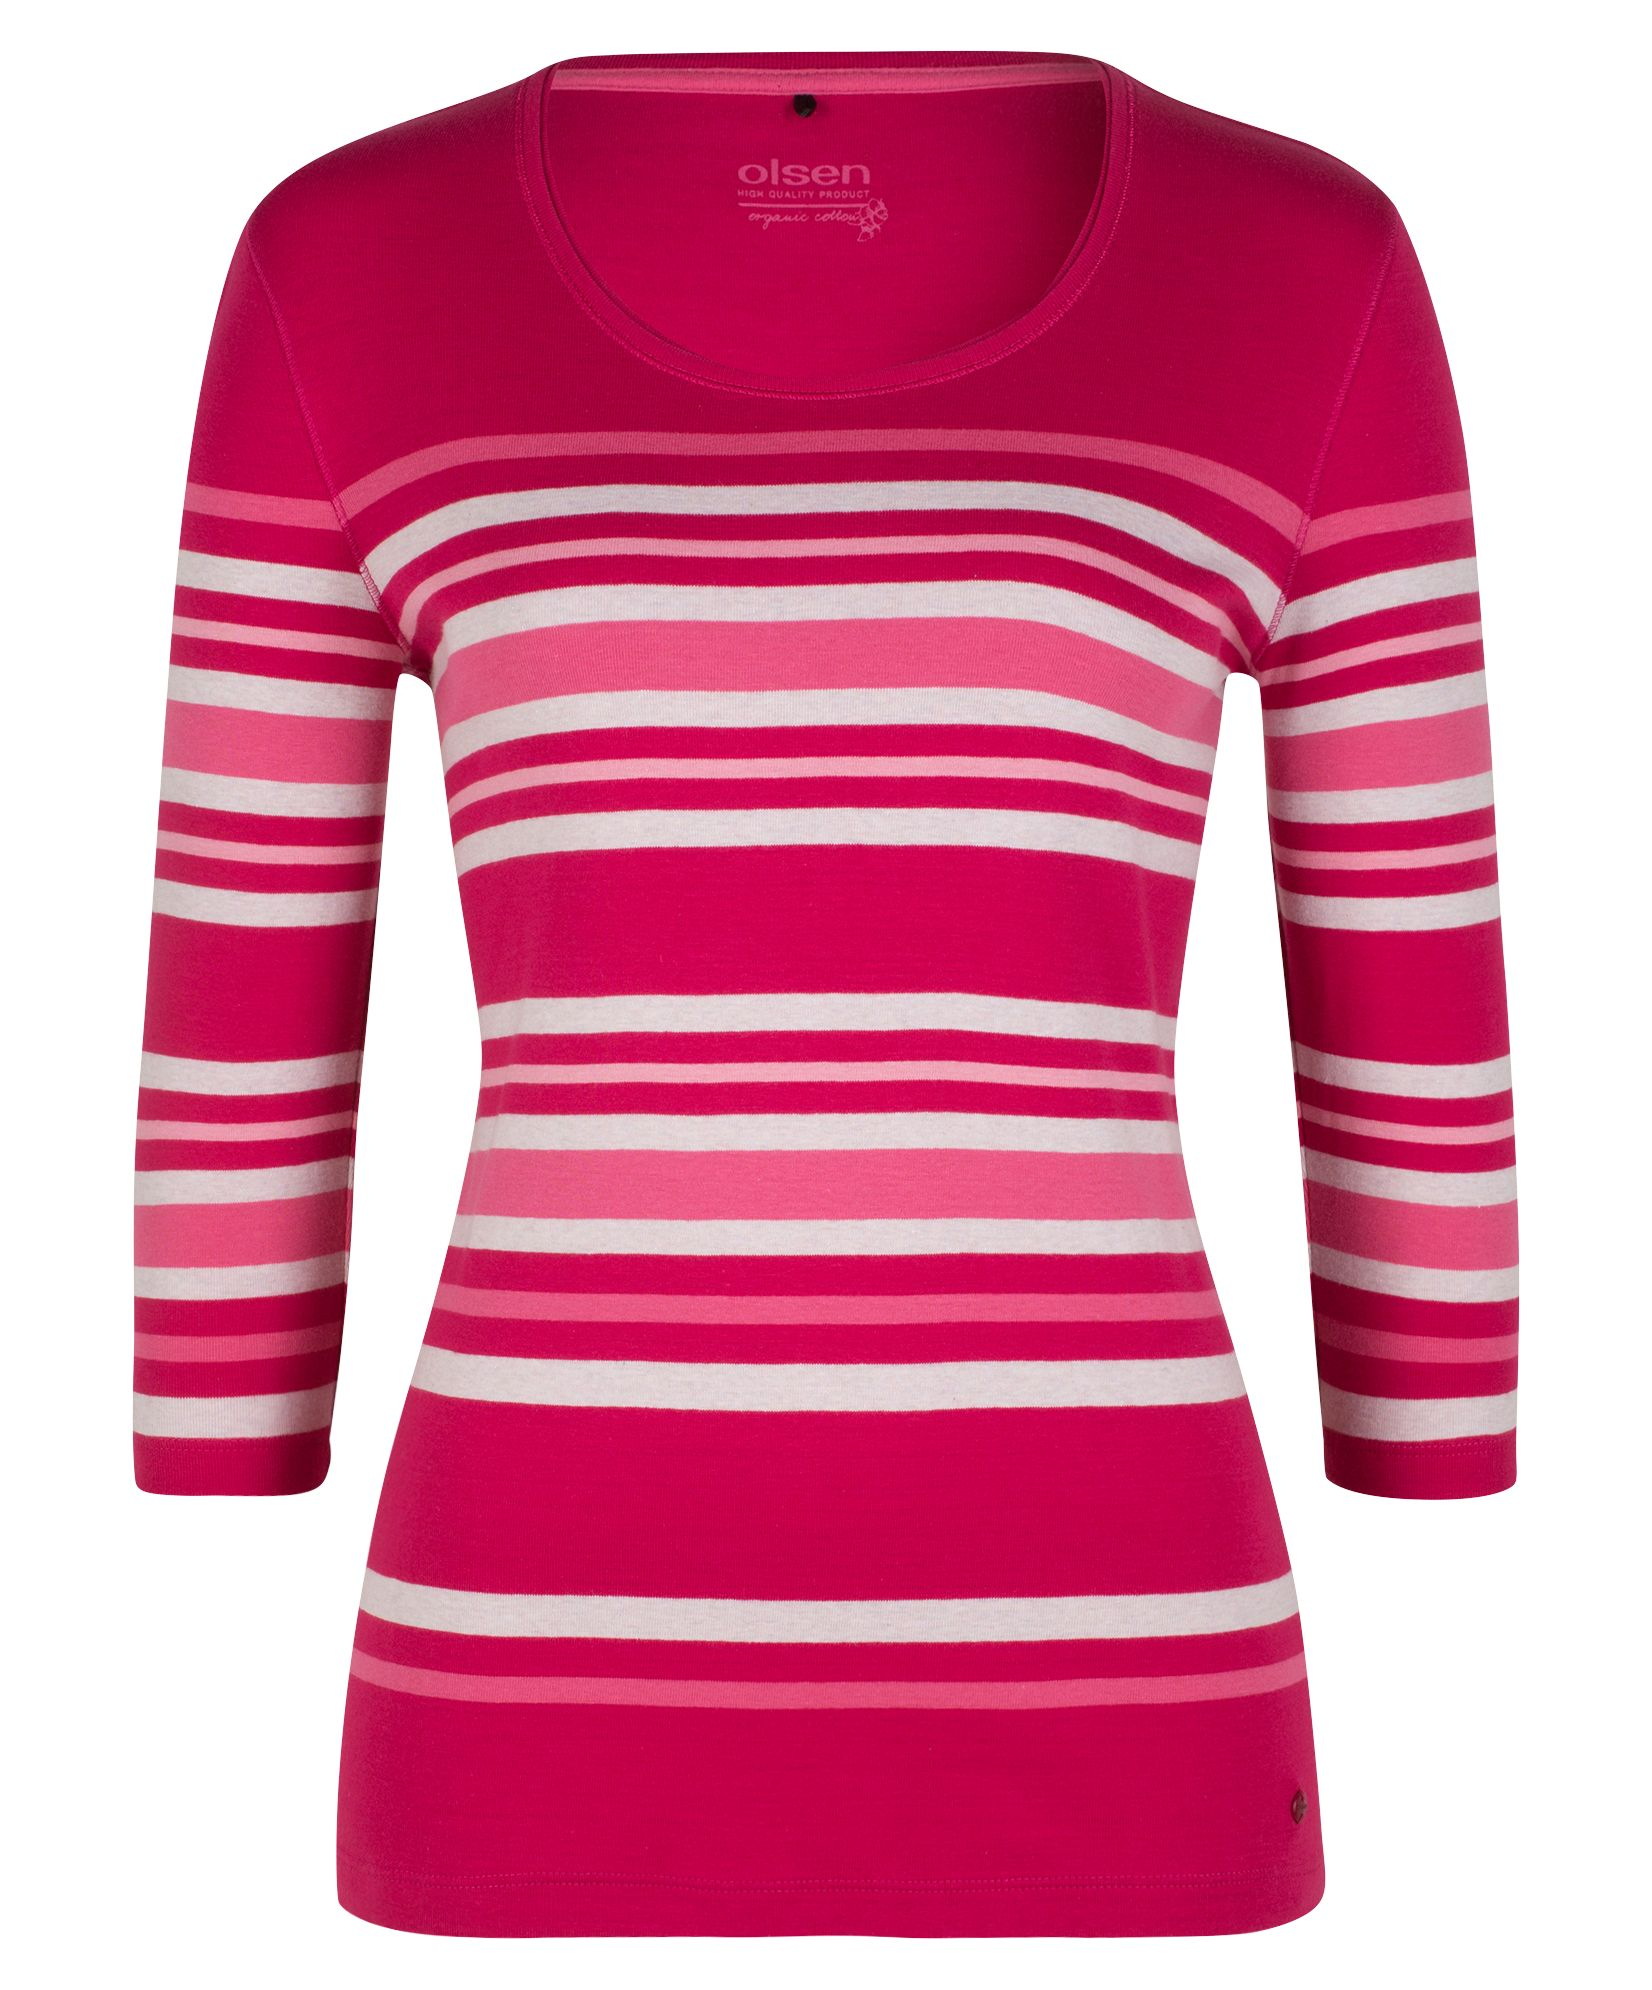 Olsen T-Shirt Multicolour Stripes, Berry